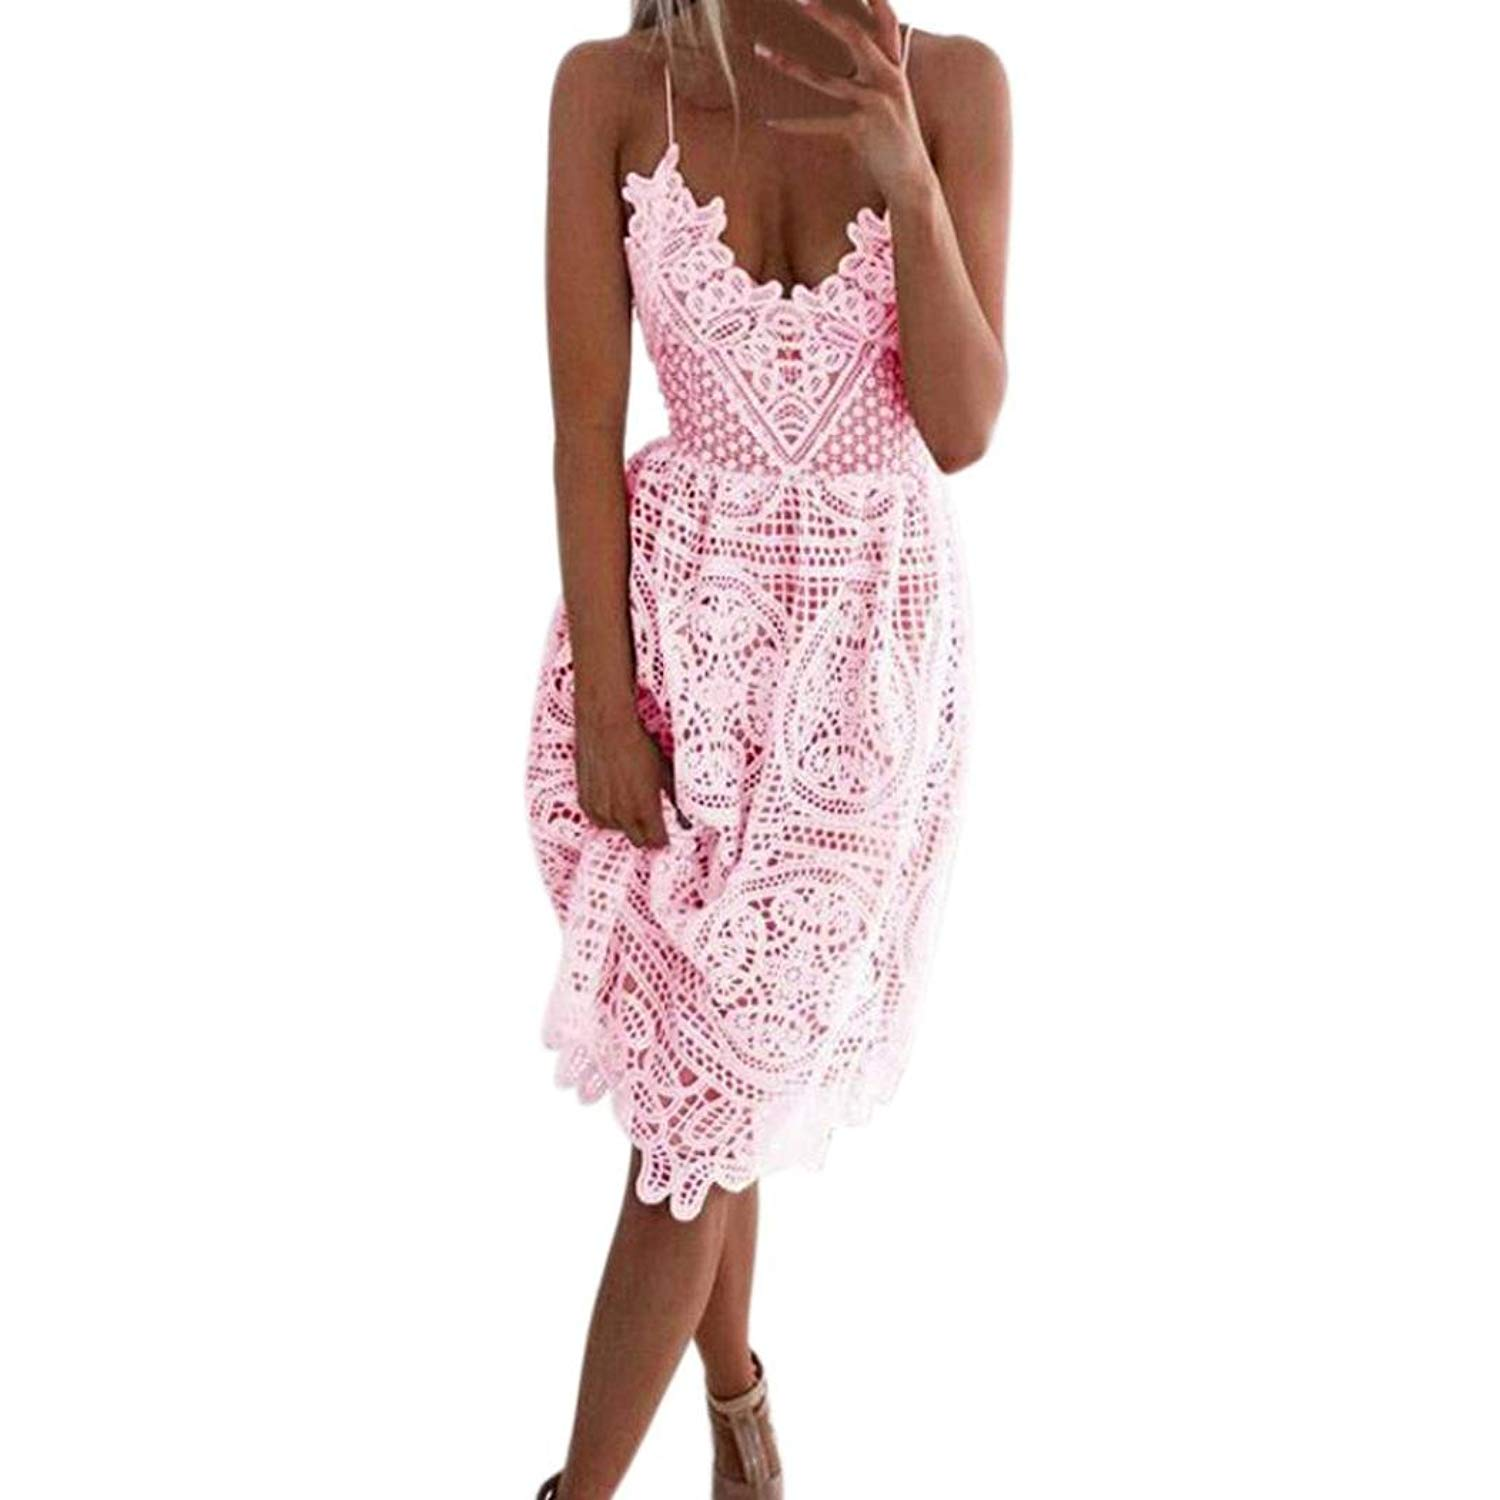 b882ab5c7d4 Get Quotations · Wondere Summer Sleeveless Lace Sling Dress for Women